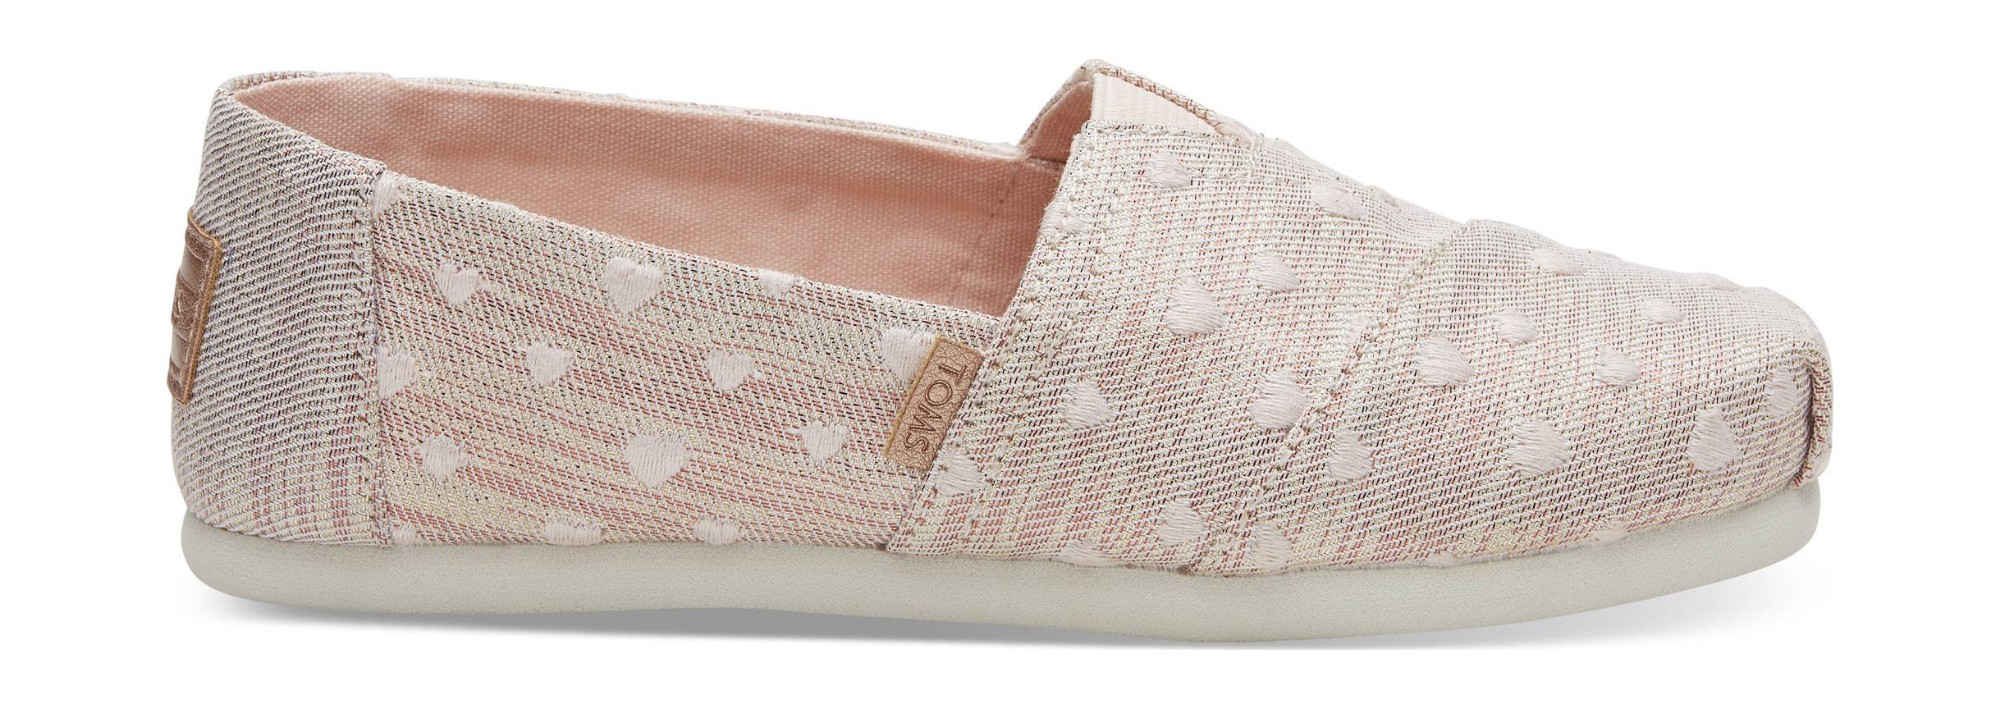 8eda9a59e3b Previous. TOMS Twill Glimmer Embroidery Junior s Alpargata Rose Cloud ...